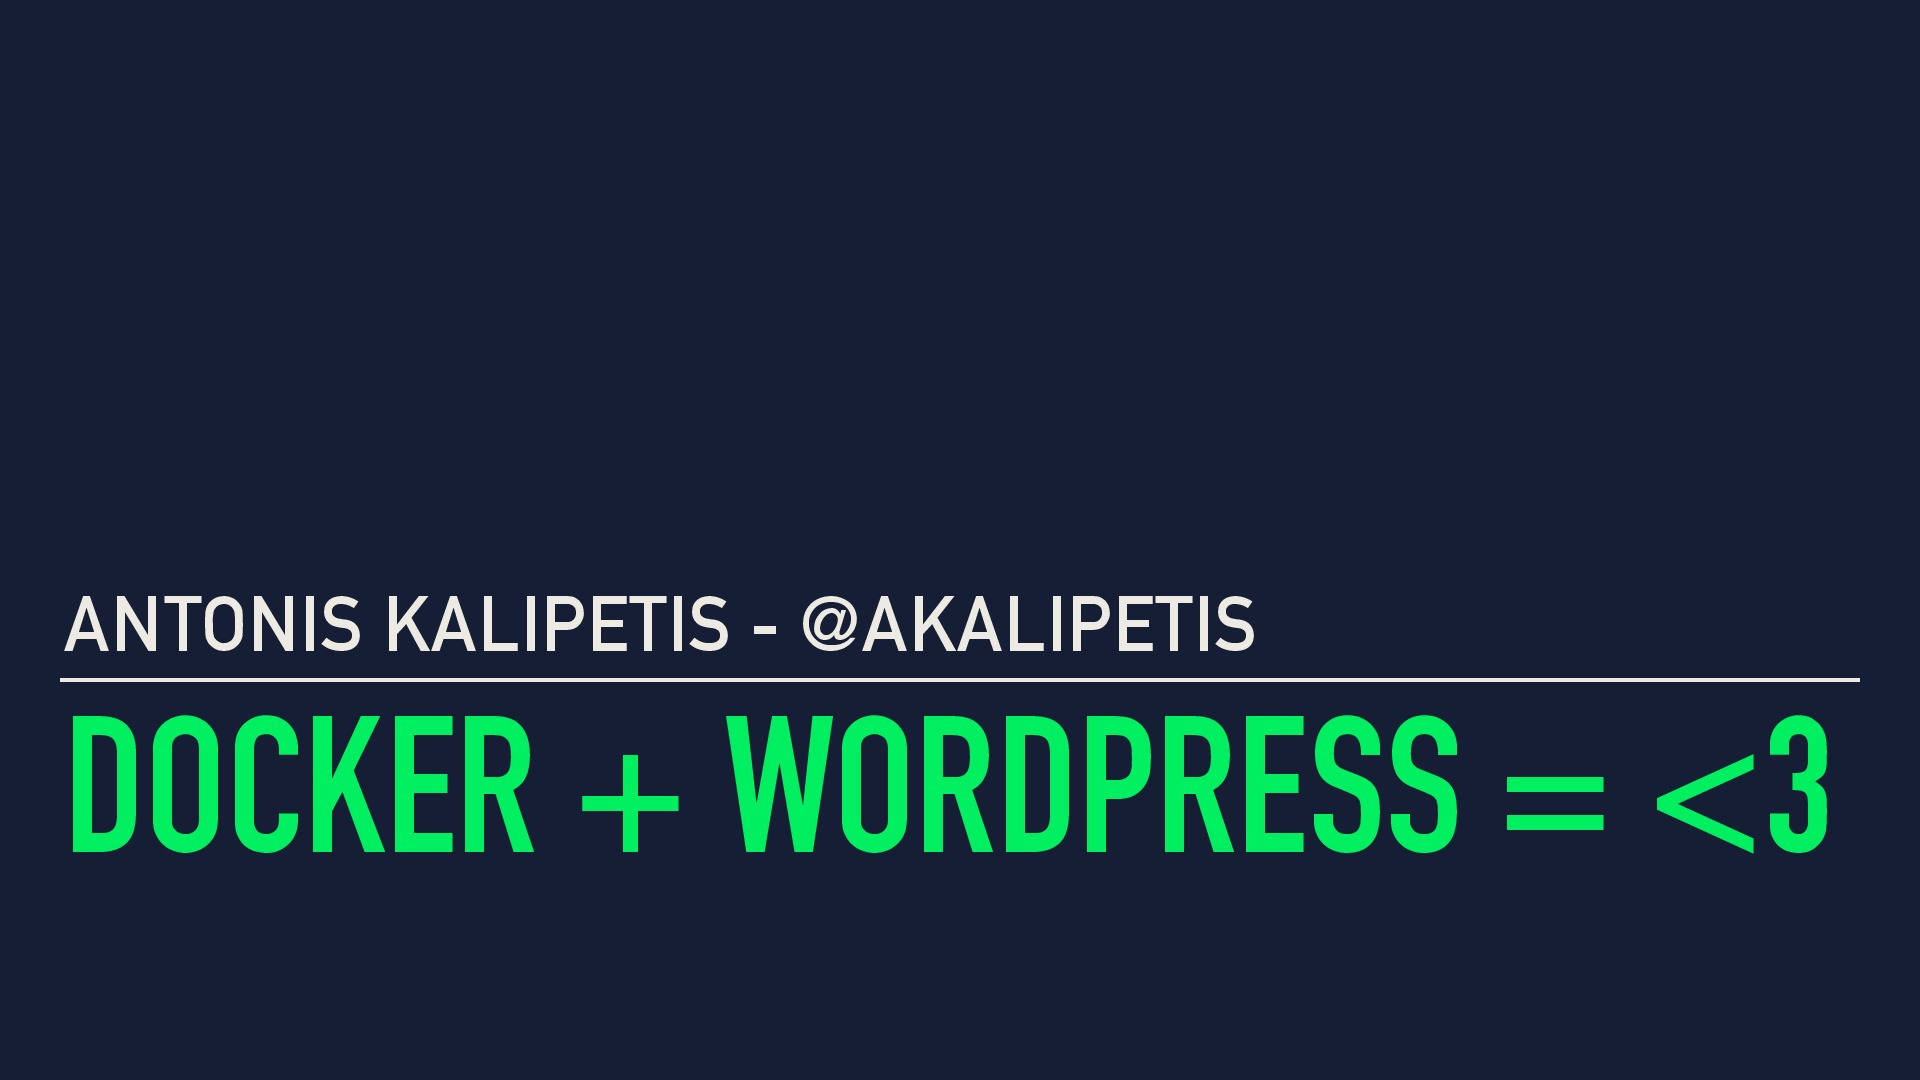 Docker + WordPress = <3